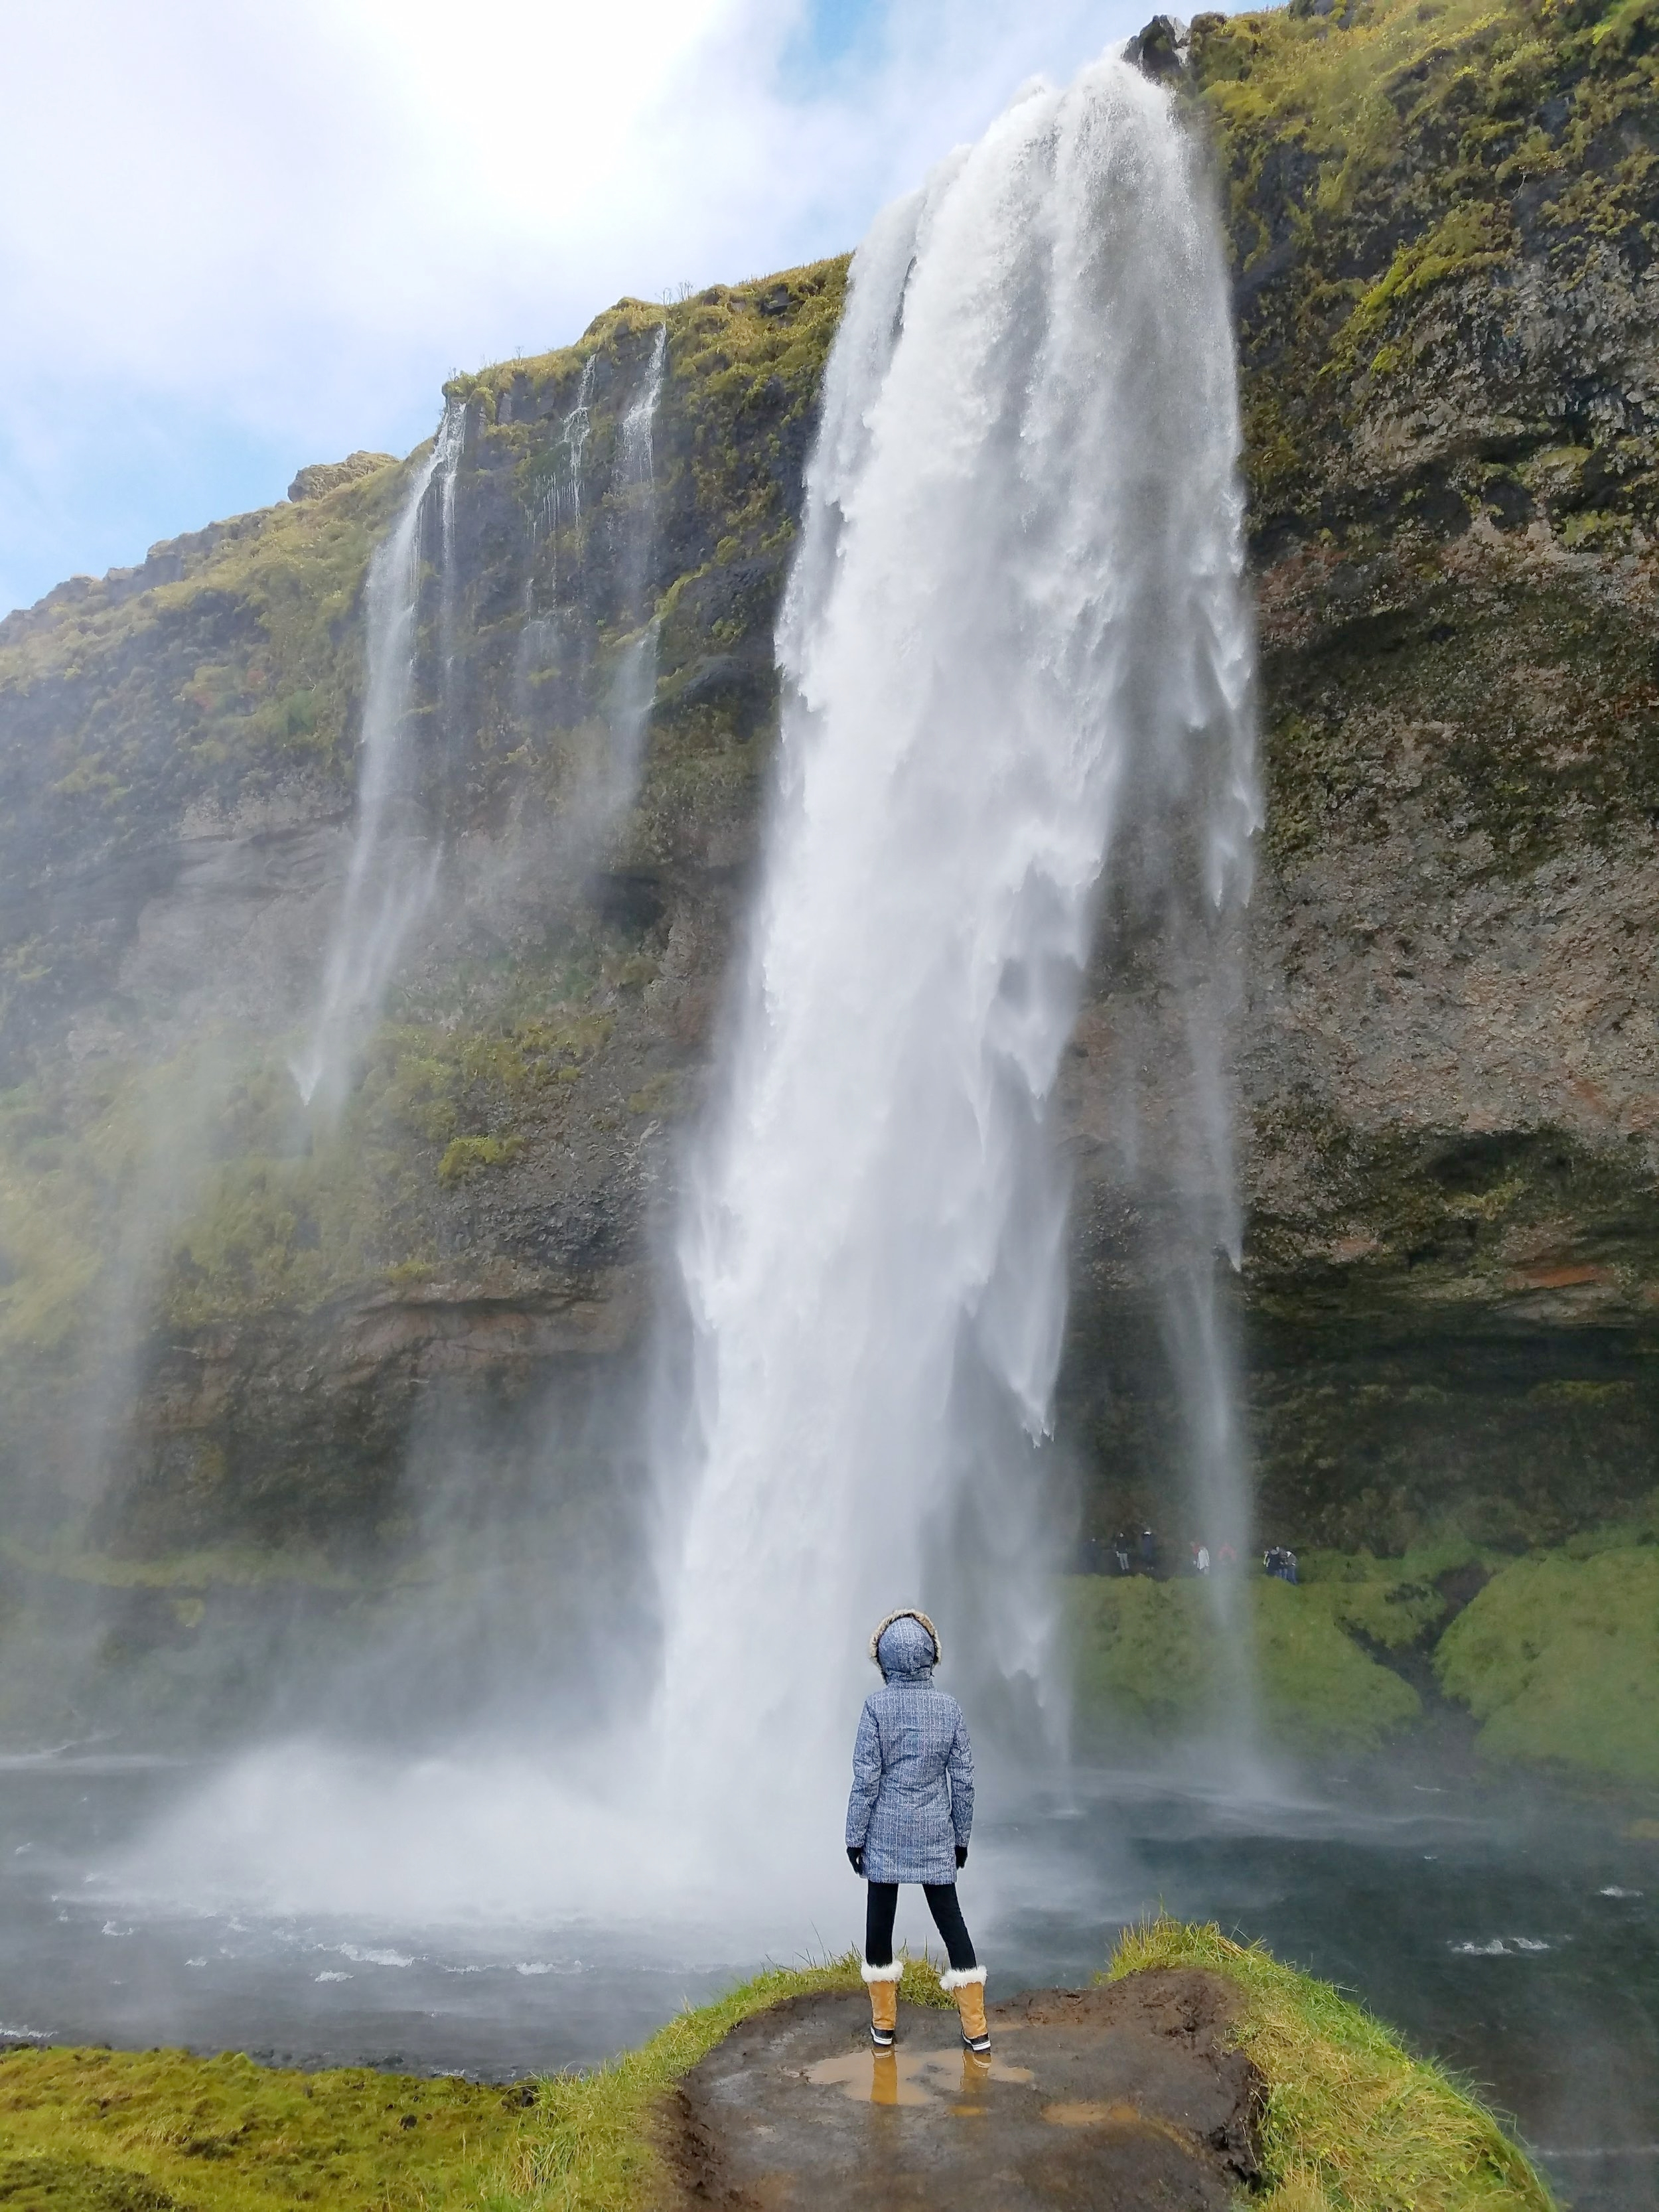 Seljalandsfoss waterfall is one of the prettiest waterfalls in Iceland. In the right conditions, you can walk behind the falls. #iceland #travel #waterfall #icelandtravel #traveltips #europetravel #bestwaterfalls andsfoss but hidden by cliffs. #travel #iceland #icelandtravel #wanderlust #europe #waterfalls #naturepics #icelandwaterfalls #seljalandsfoss #seljalandsfossiceland #waterfallsaroundtheworld #traveldestinations